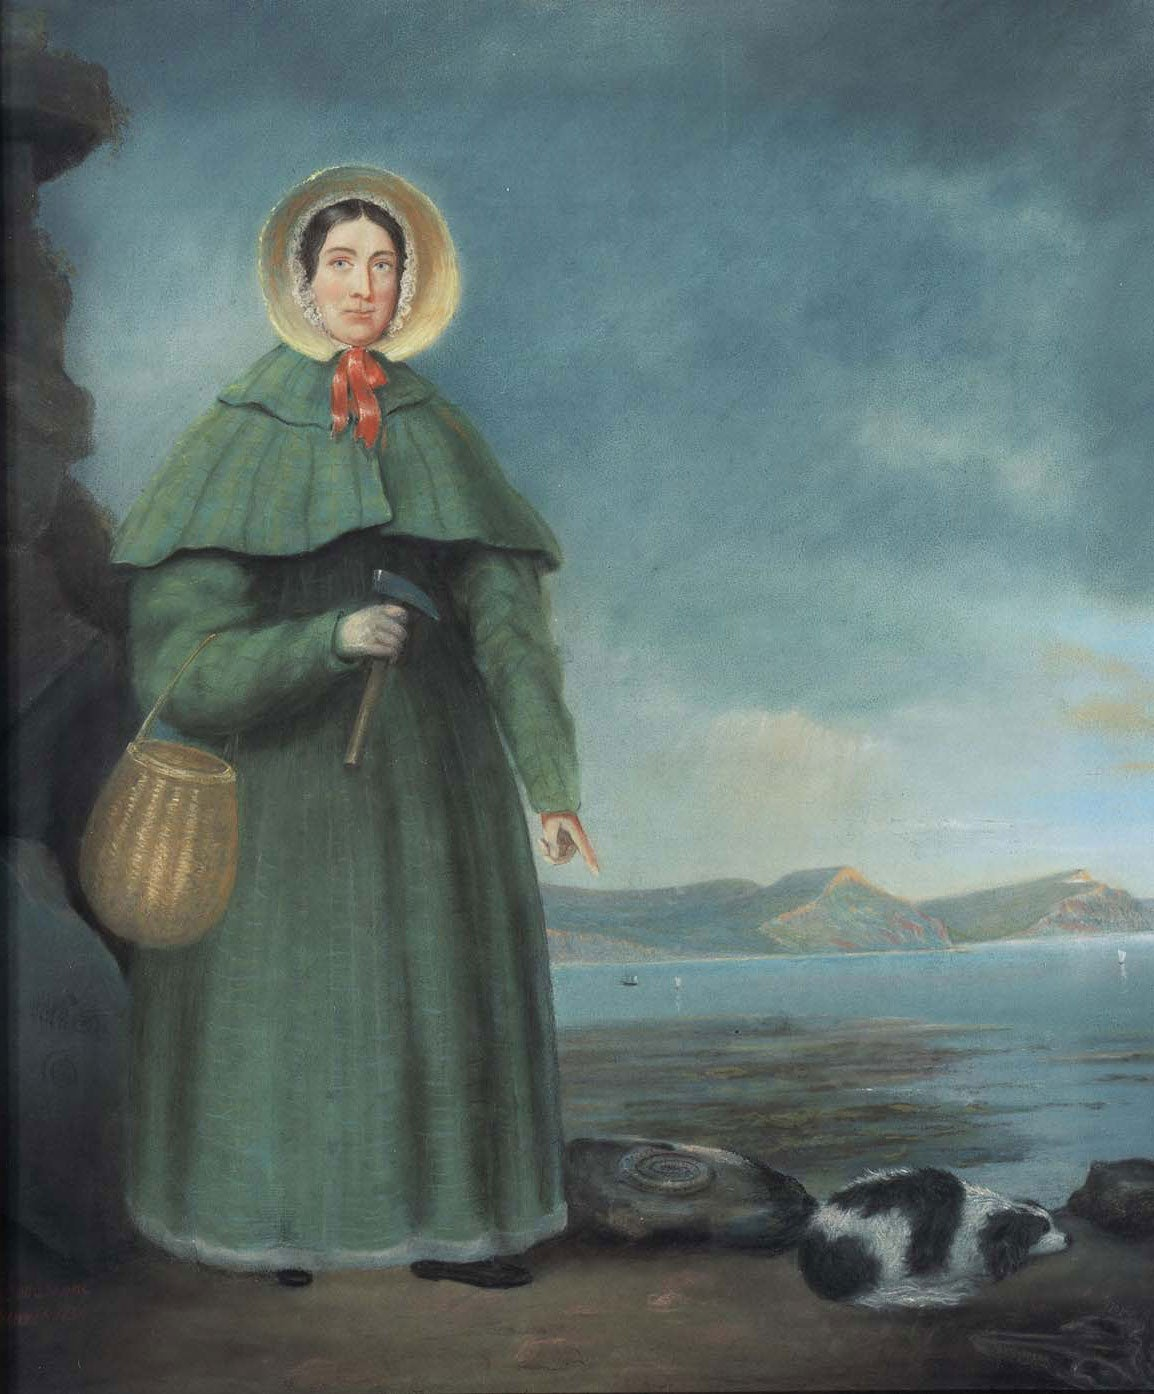 Colour painting of Mary Anning, standing on a beach, holding a small basket and hammer, pointing down to the newly discover fossil of an ammonite